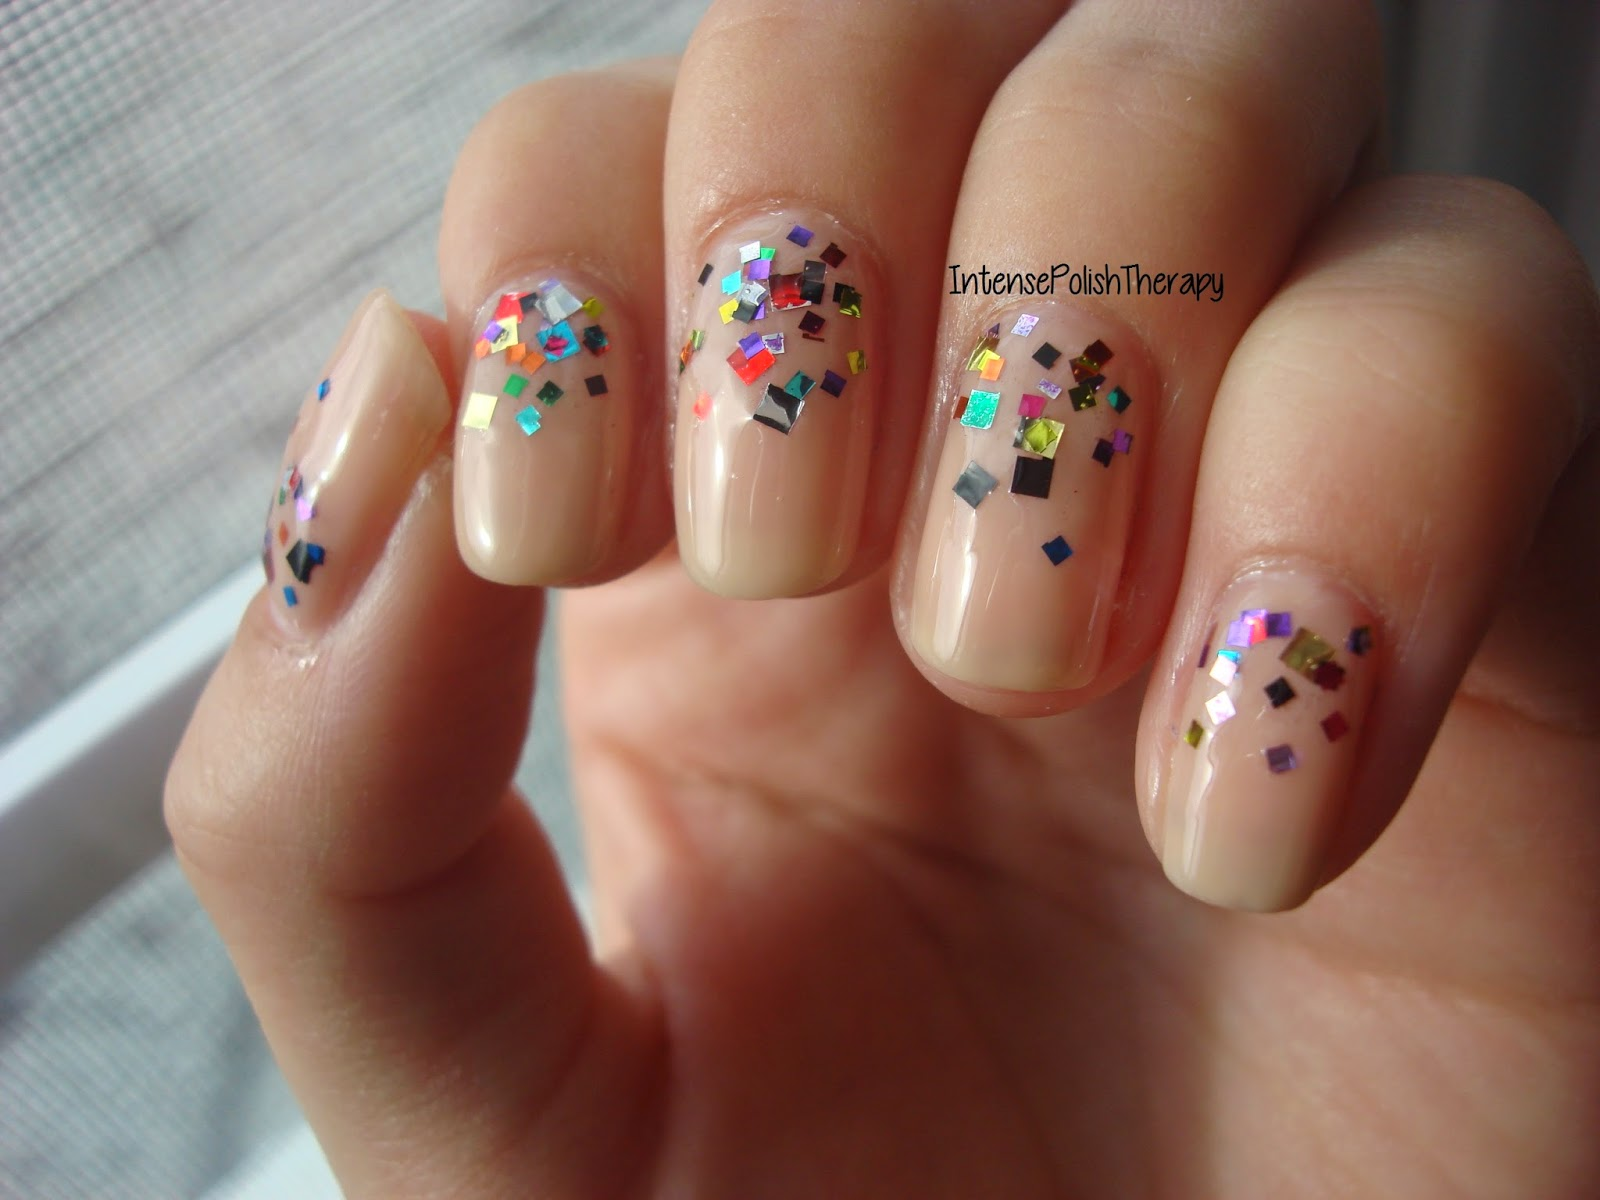 OPI - Glints of Glinda & Candy Lacquer - Block Party